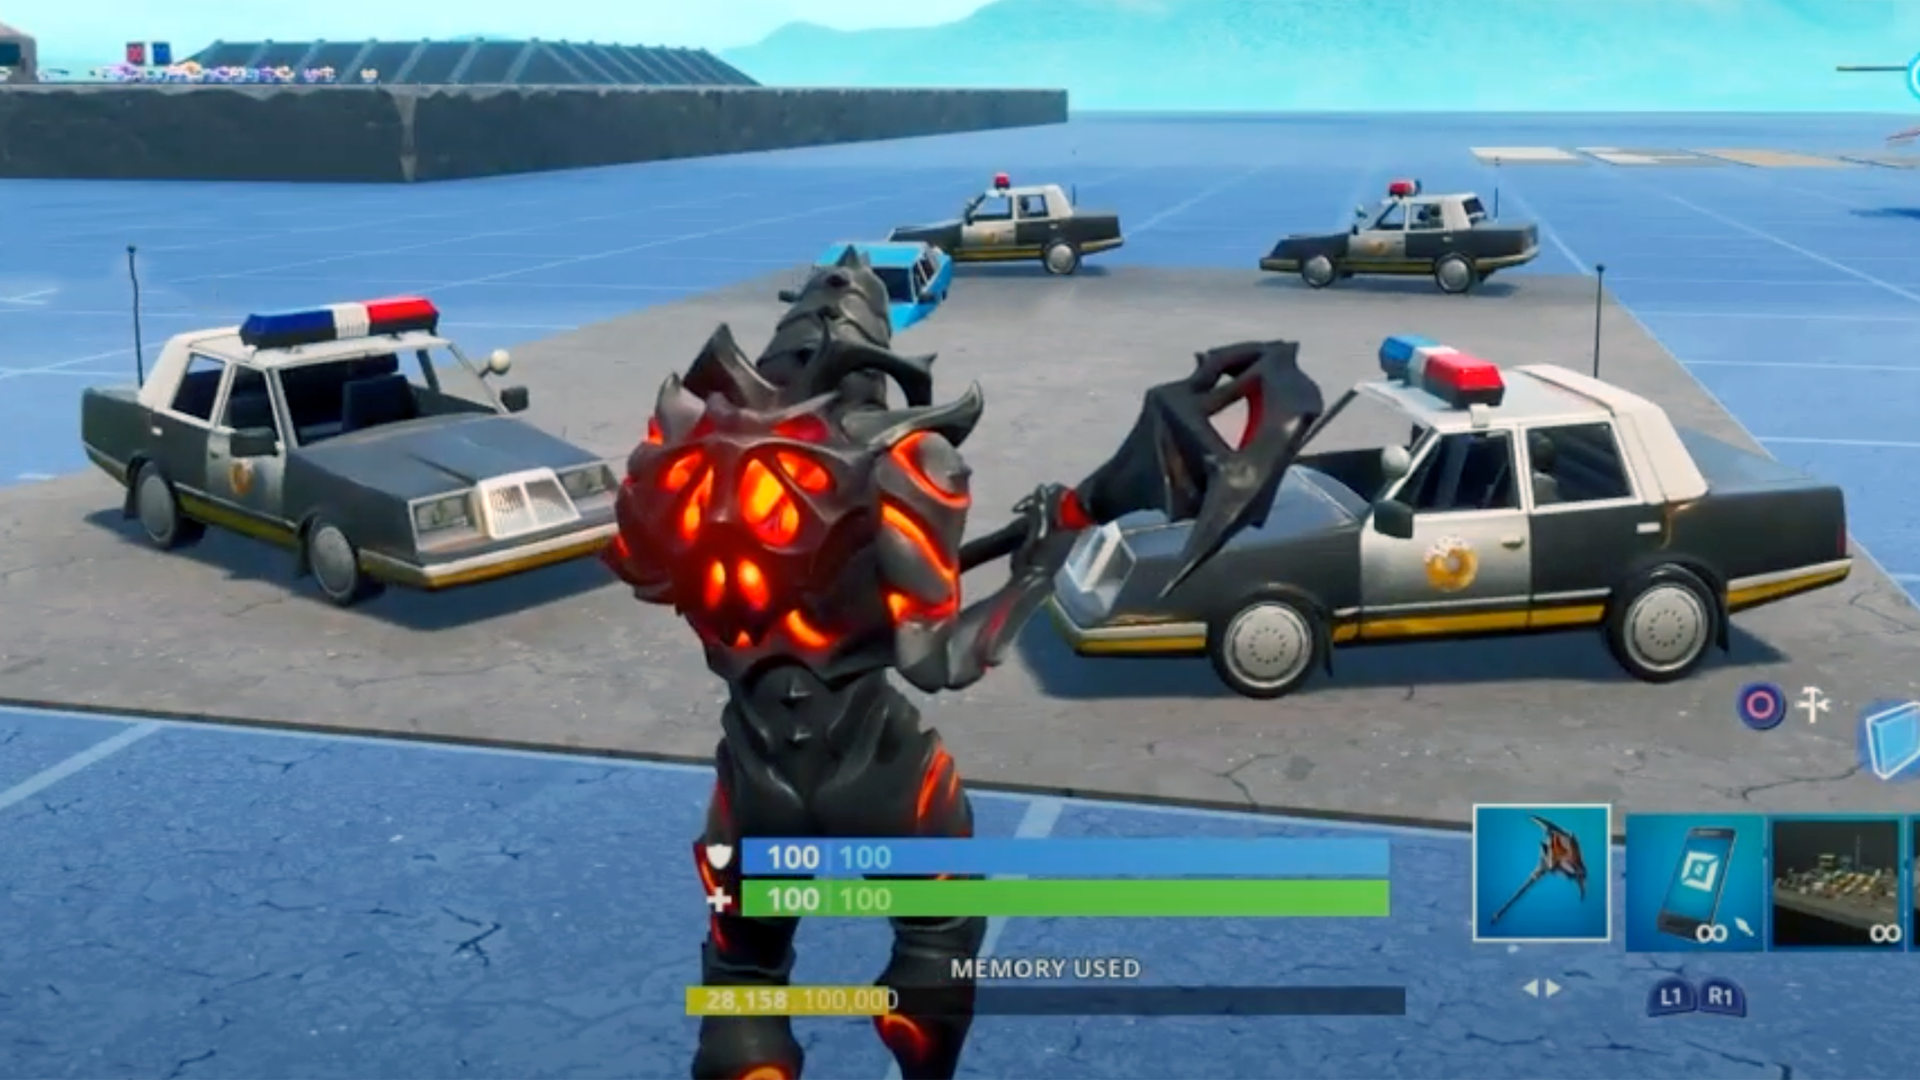 Fortnite Removes Police Cars In Apparent Response To Black Lives Matter Movement Sporting News